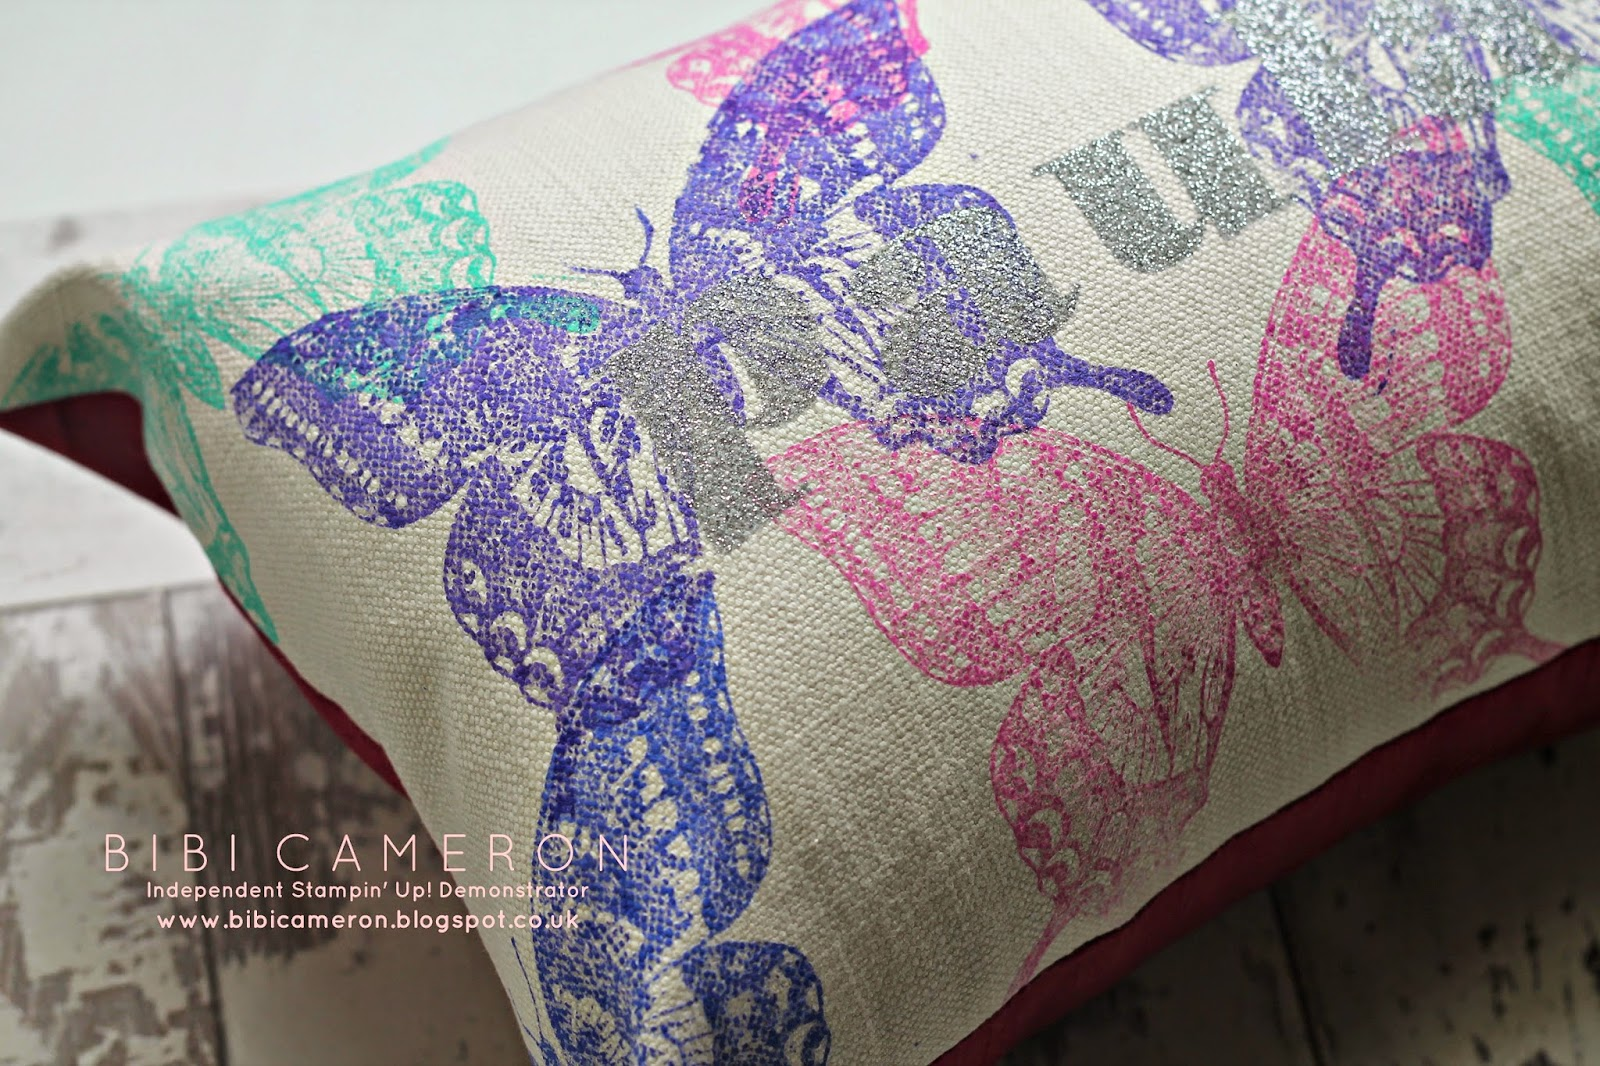 Stamping on Fabric tutorial and FAQ –  How to?